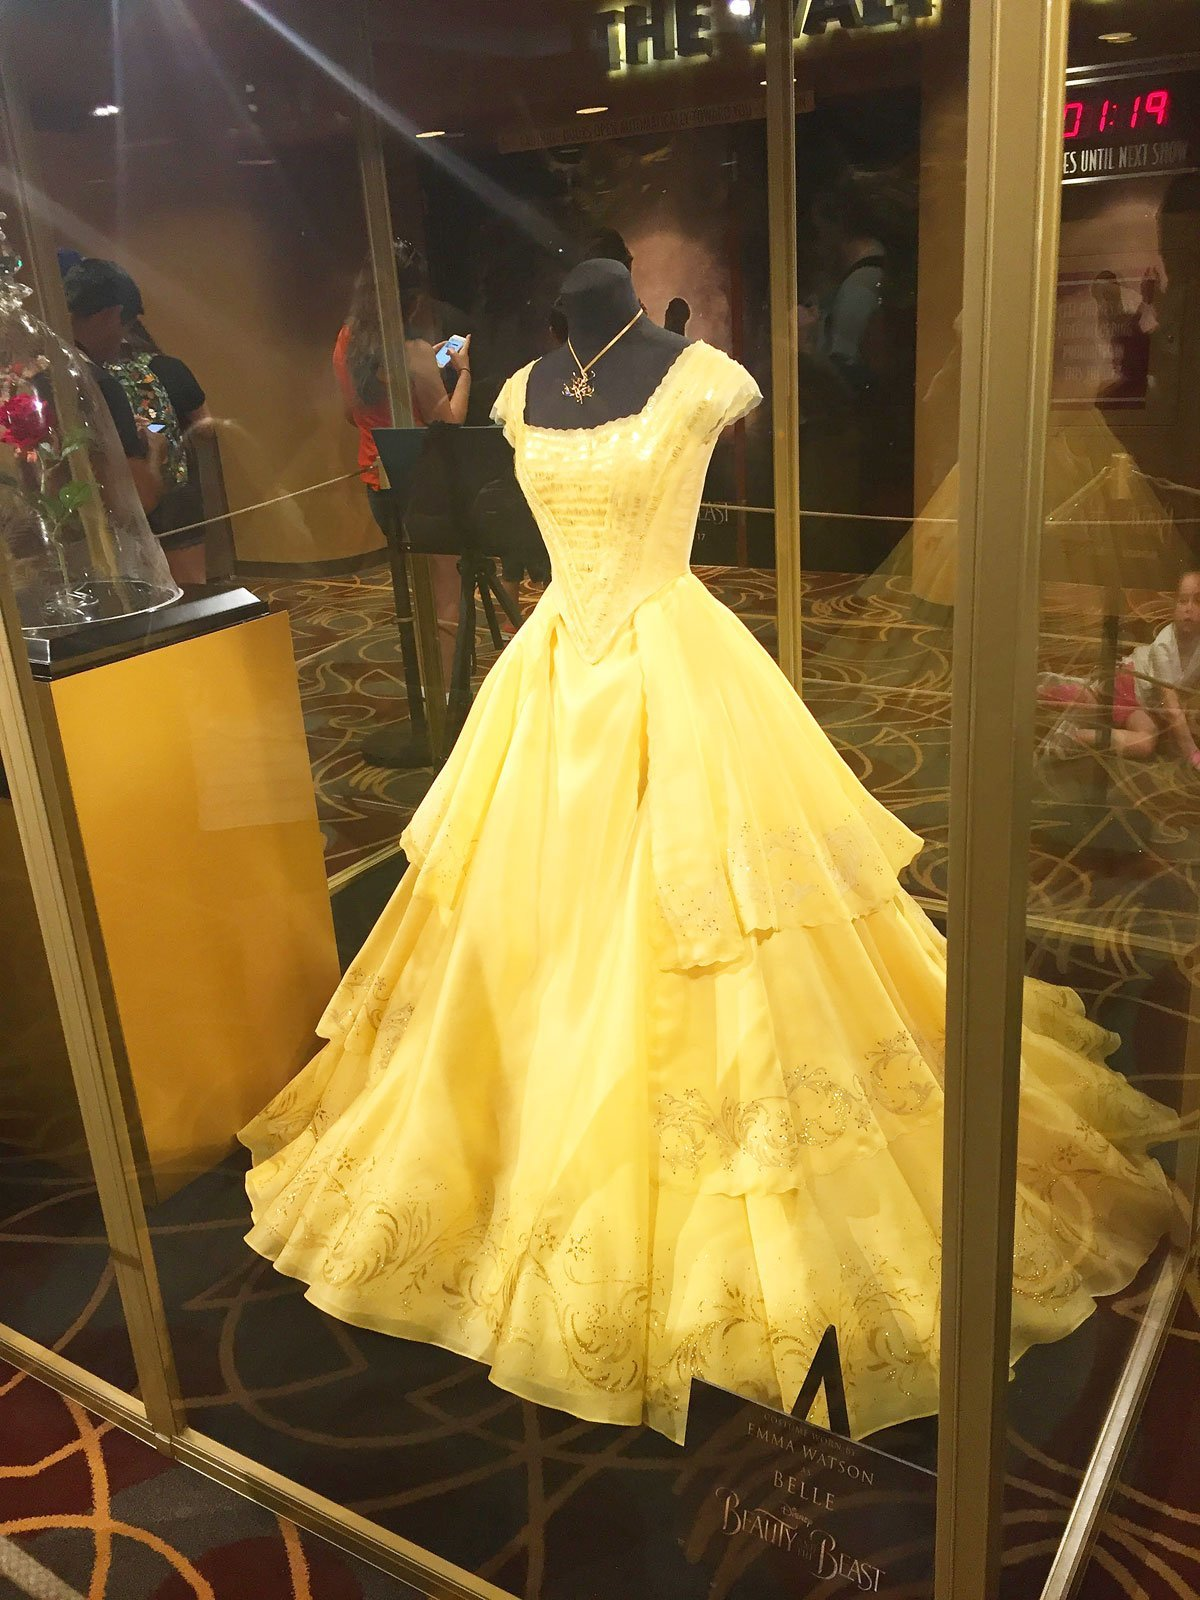 Emma Watson's Dress as Belle from Beauty and the Beast Live Action Movie